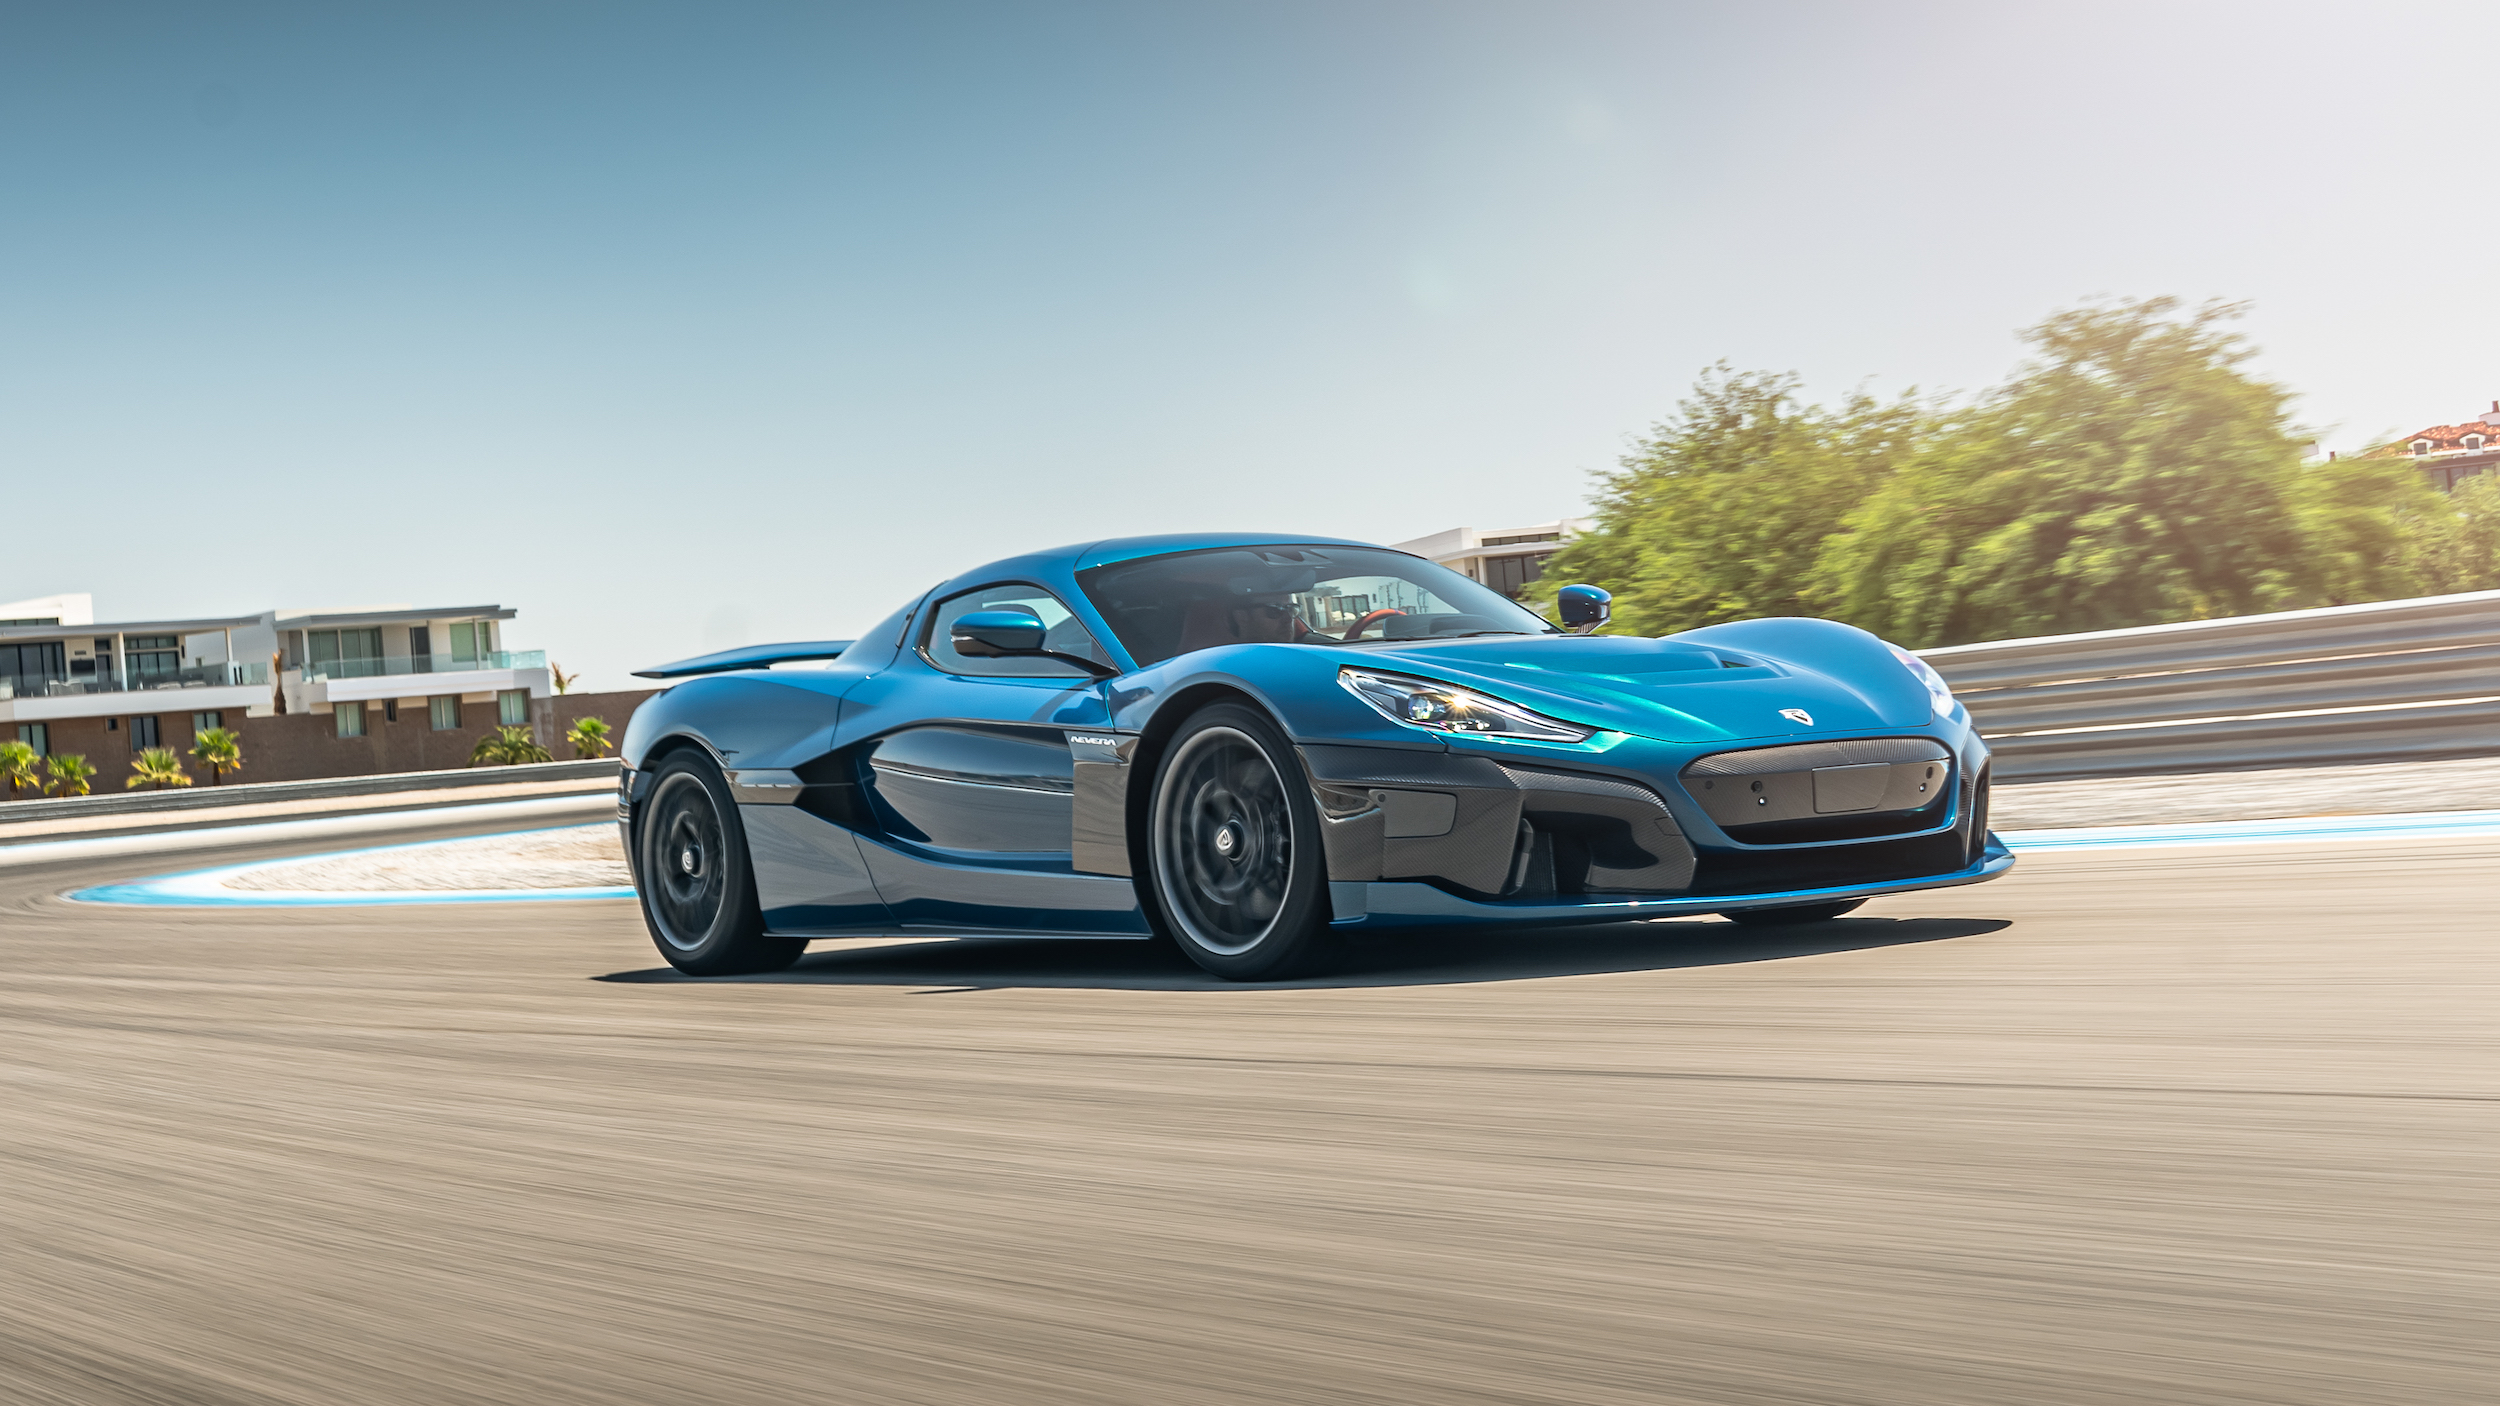 A Rimac Nevera driving on a road in summer